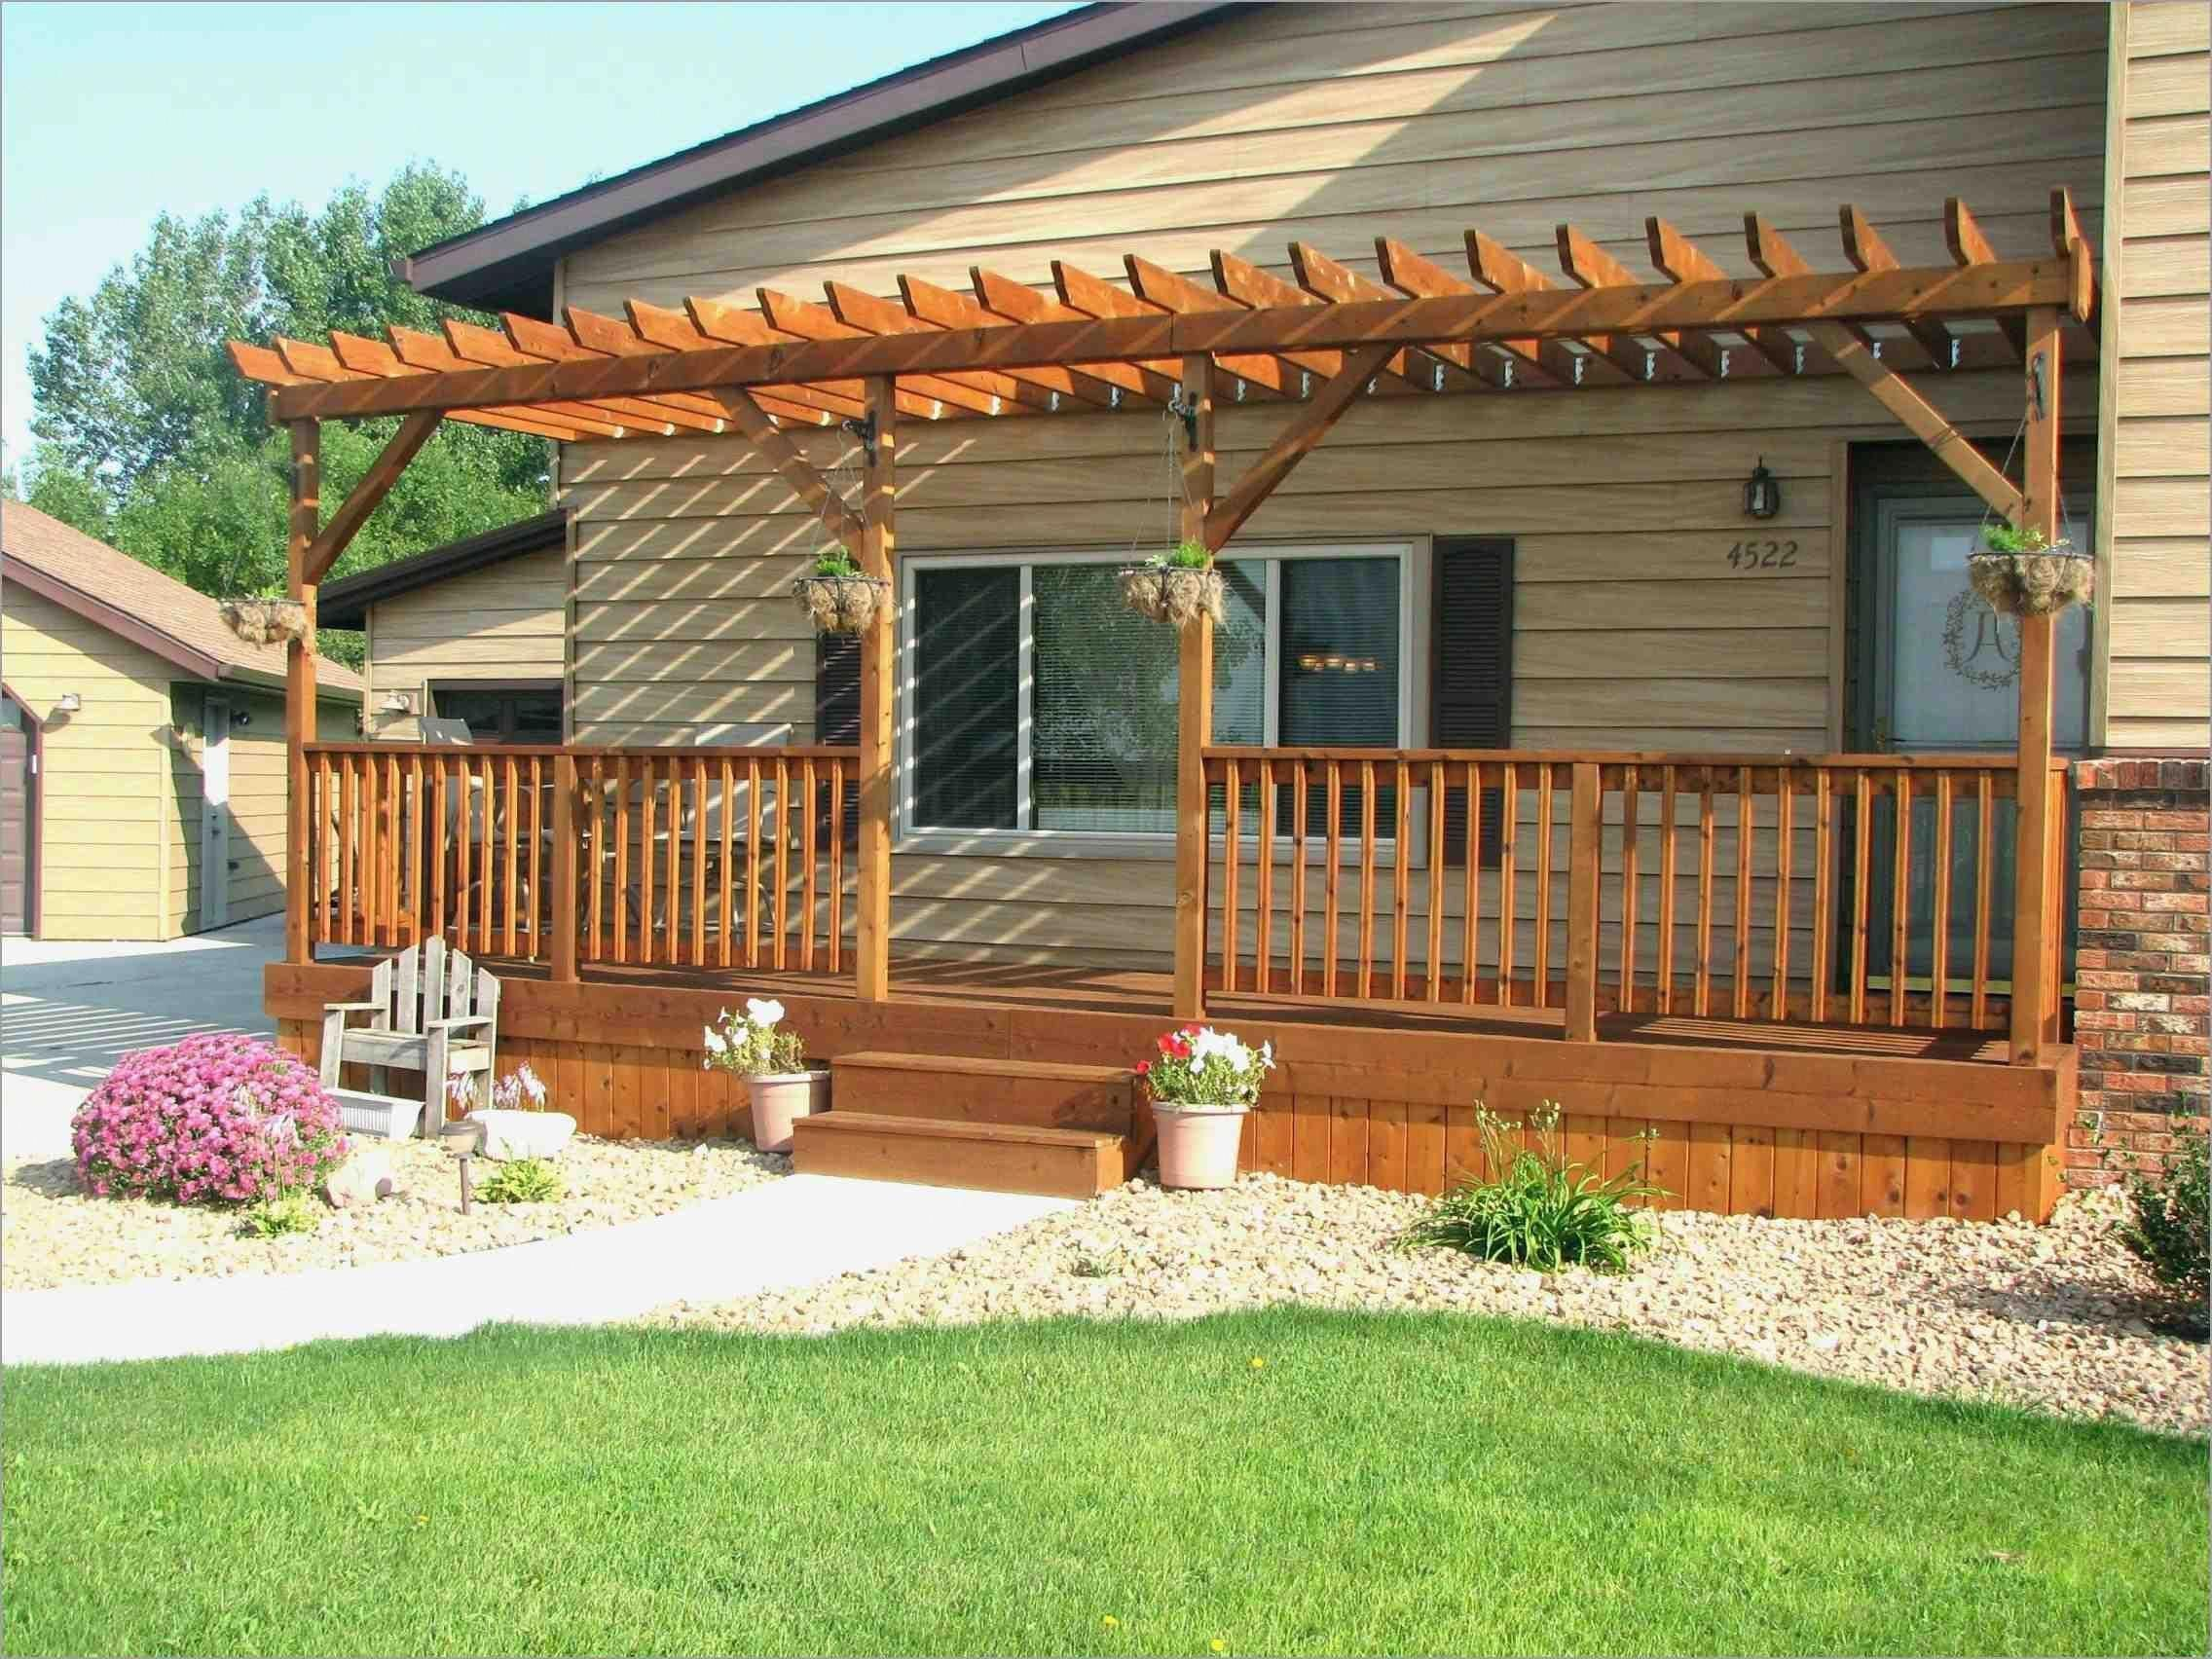 Build Pergola Patio How To A Over Deck Nz Attached Brick House Of